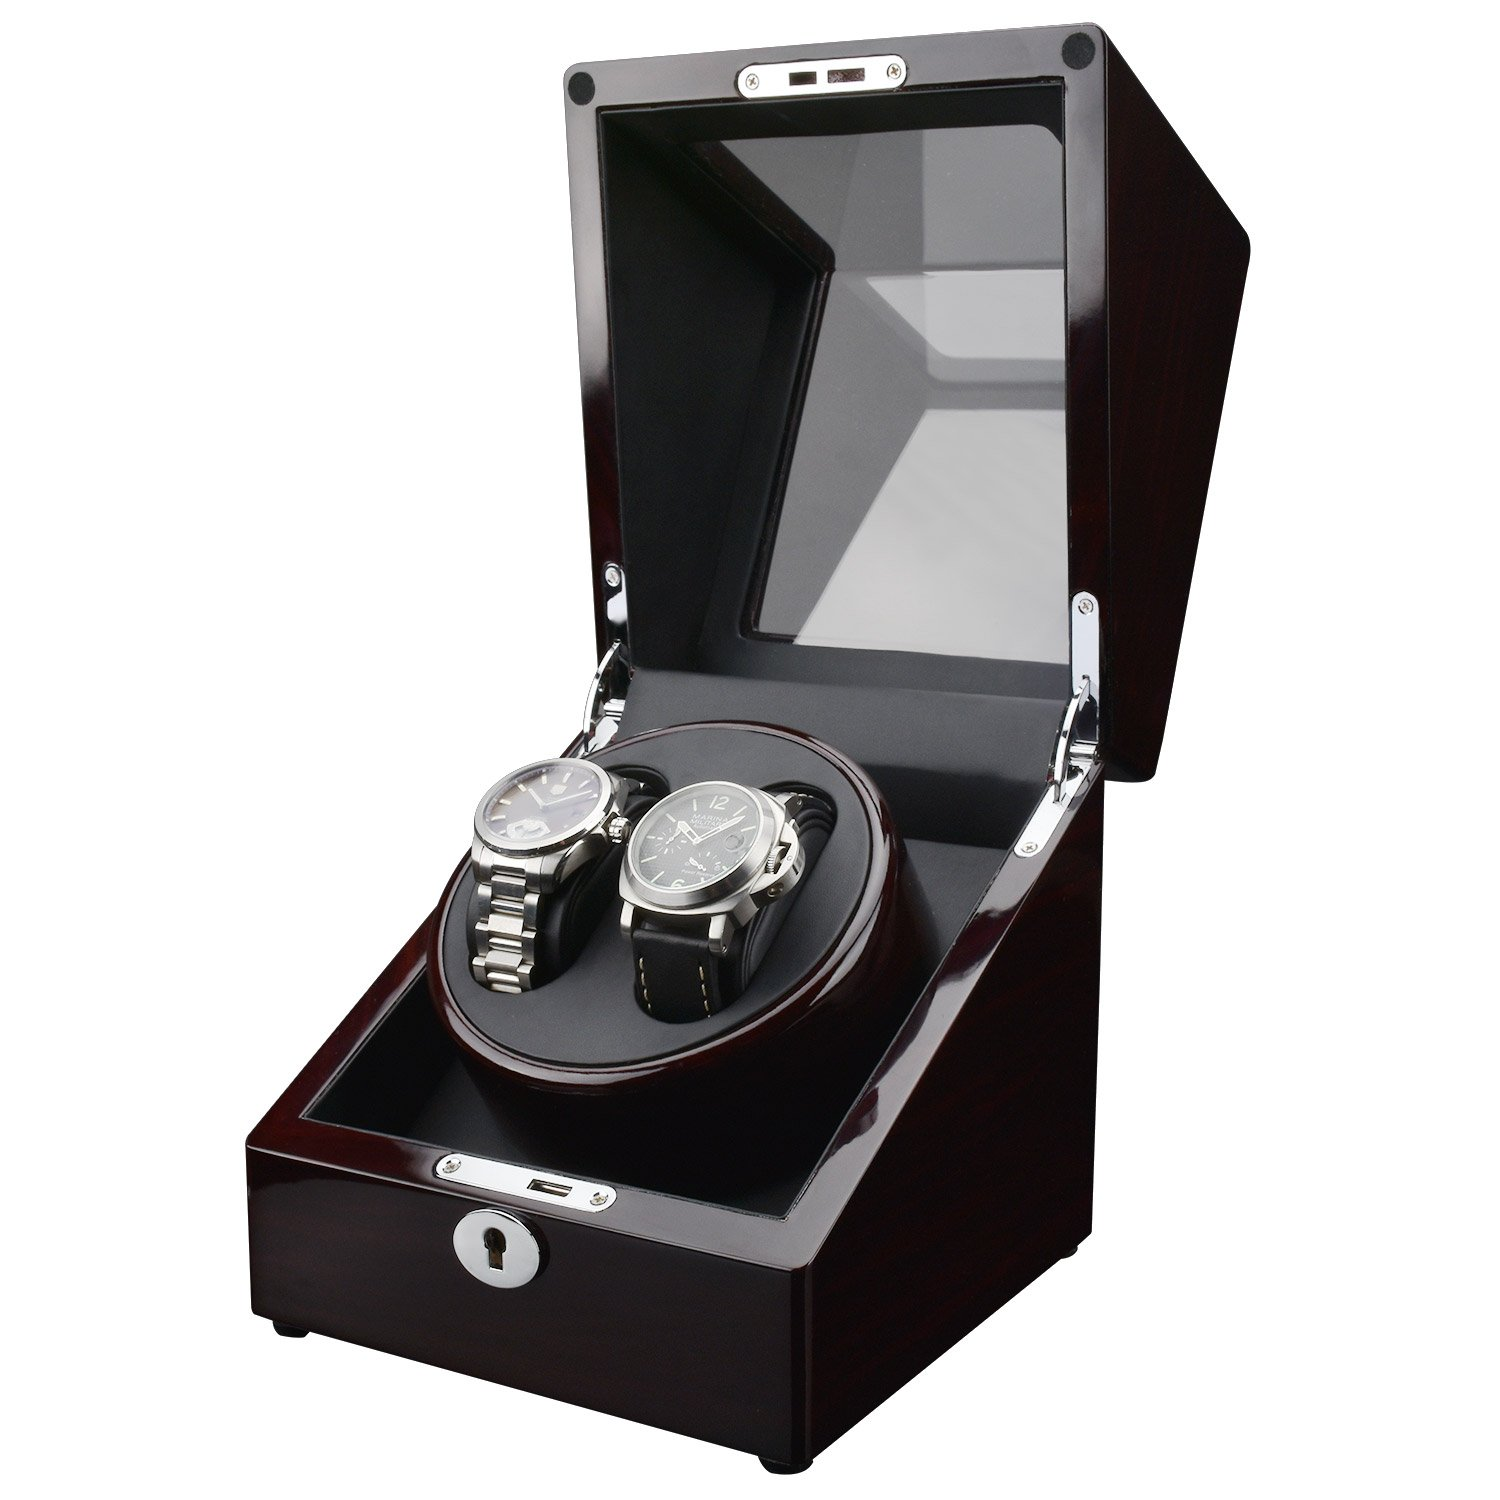 Zeiger Watch Winderボックスケースwith静か自動Japaneseマブチモーター Double Watch S005-FBA B01MSYVU7P Double Watch,Berry/Black